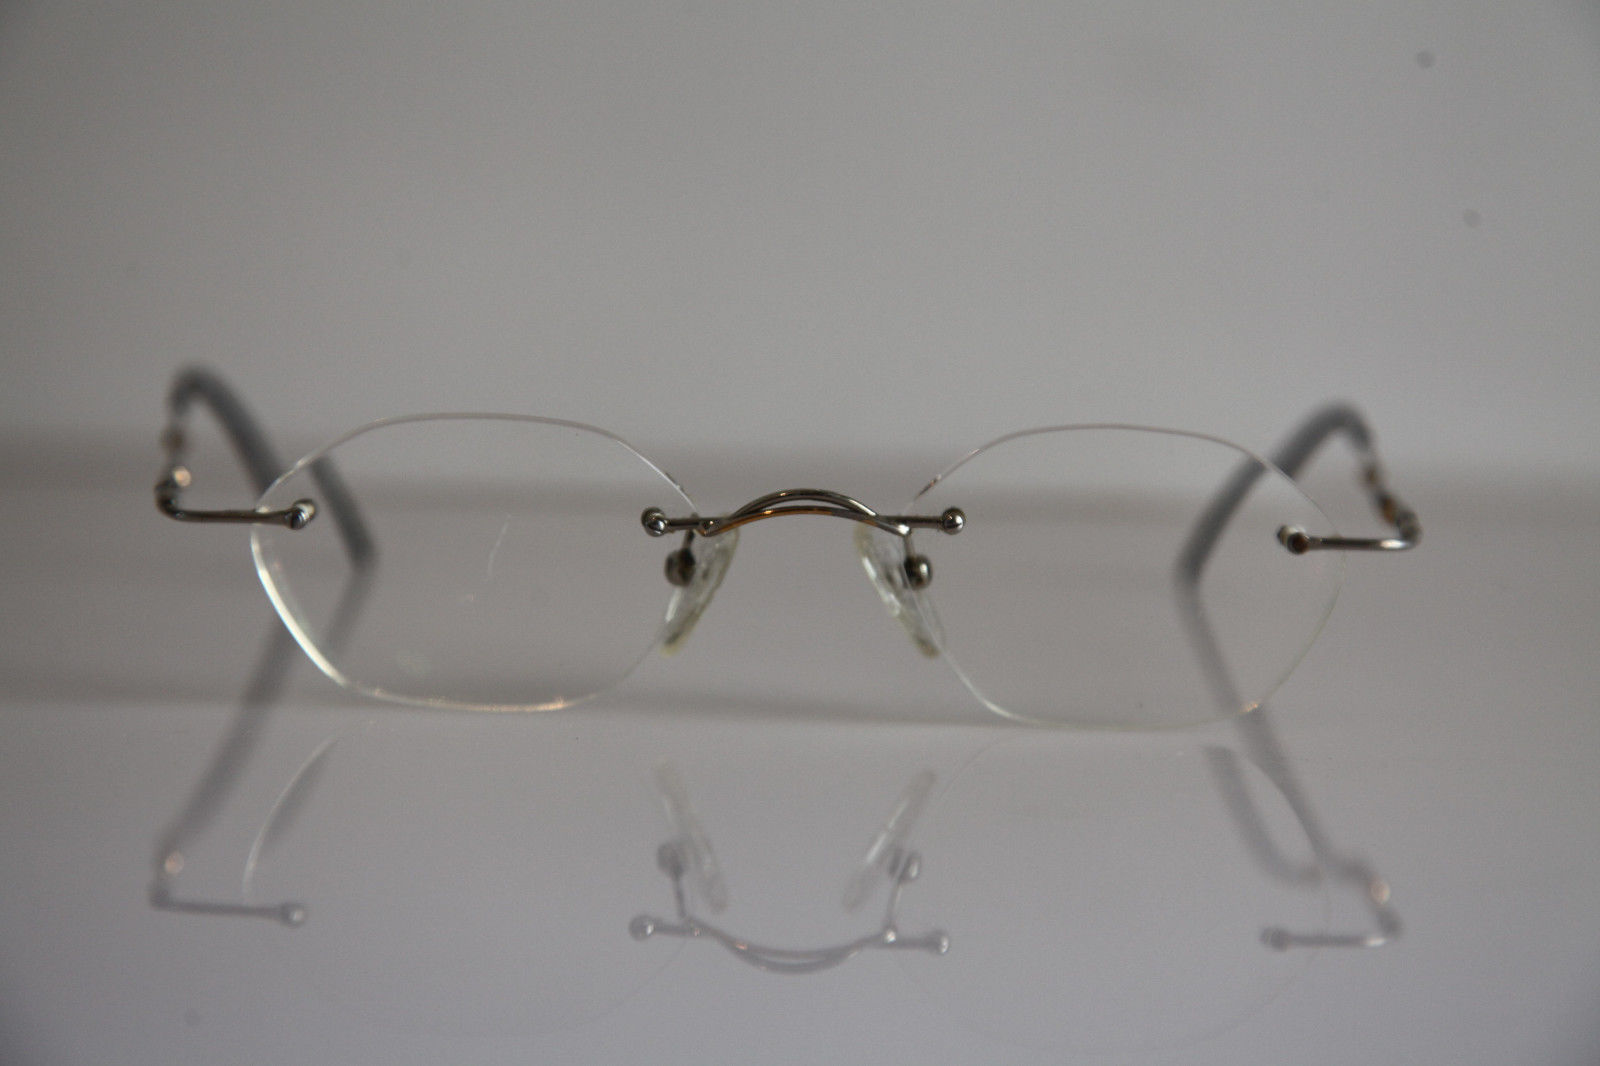 IGA OPTIC Eyewear,  Rimless Frame,  Chrome,  RX-Able Prescription Lenses.